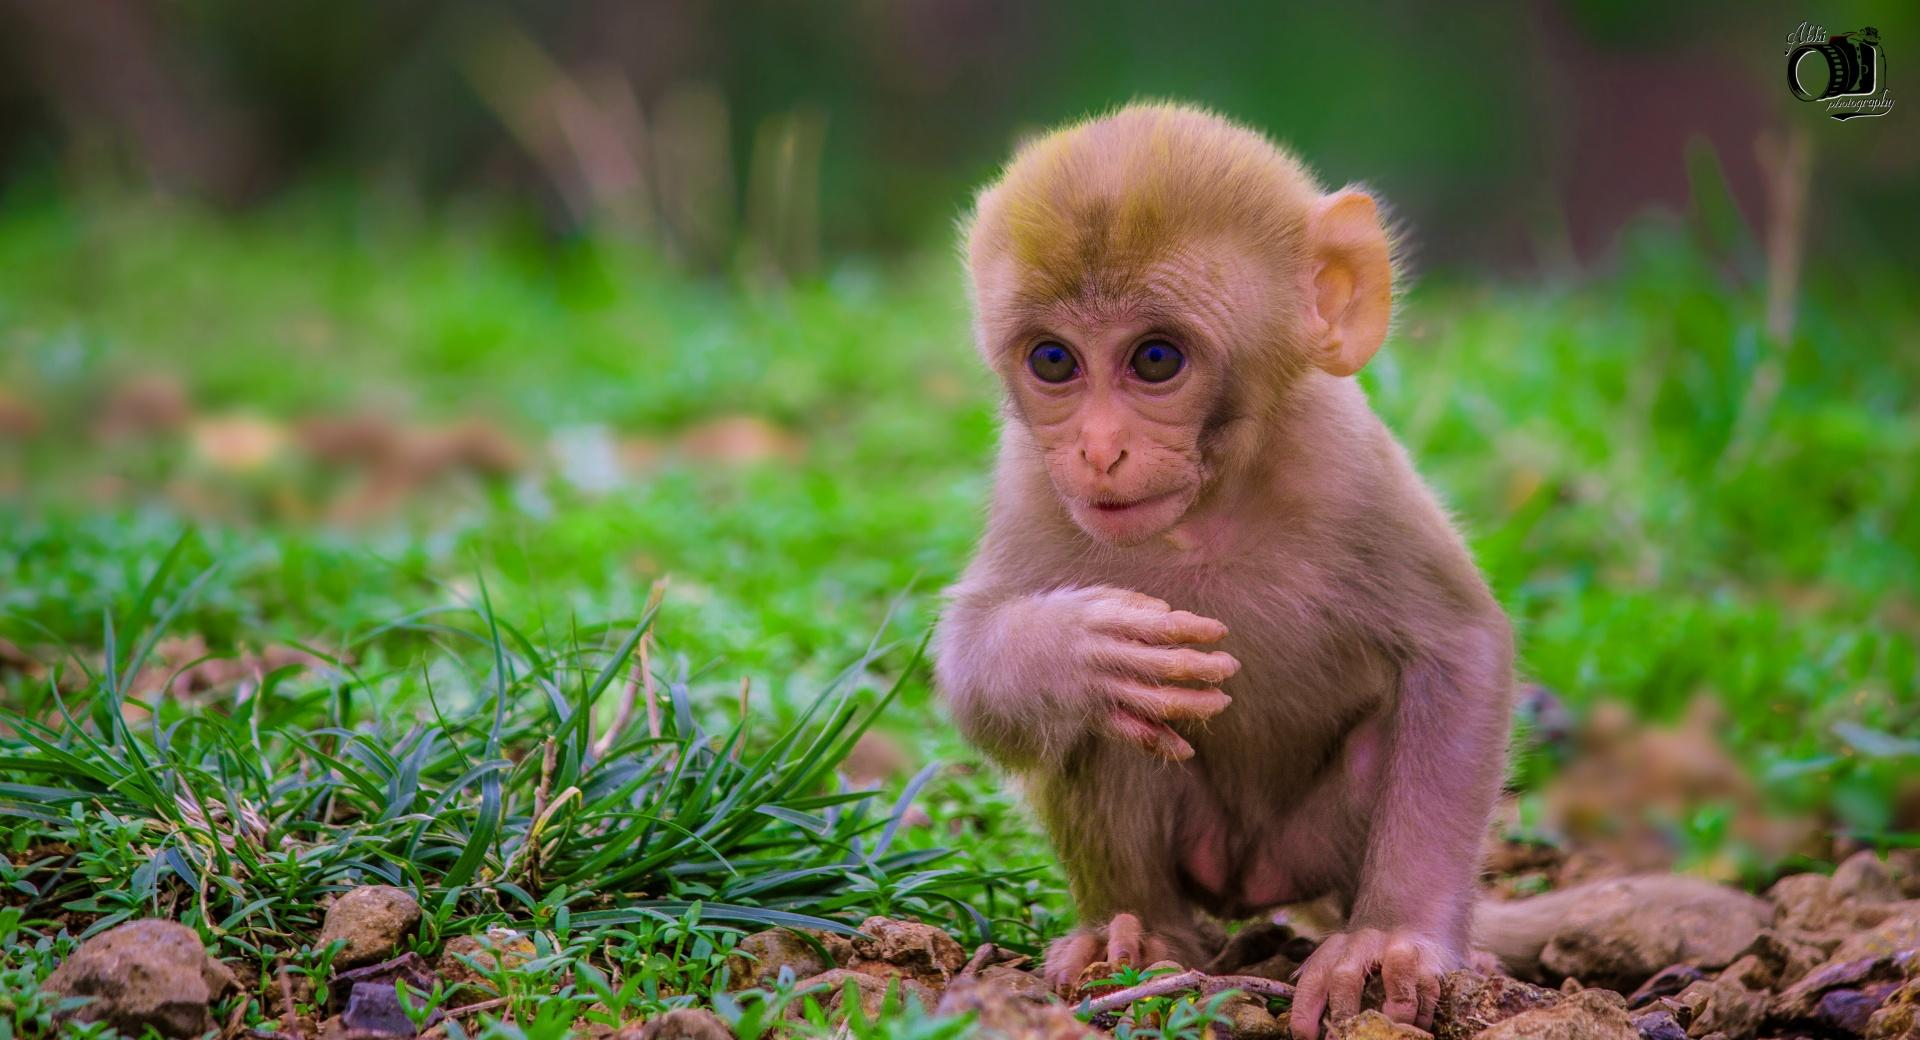 Cute Baby Monkey wallpapers HD quality